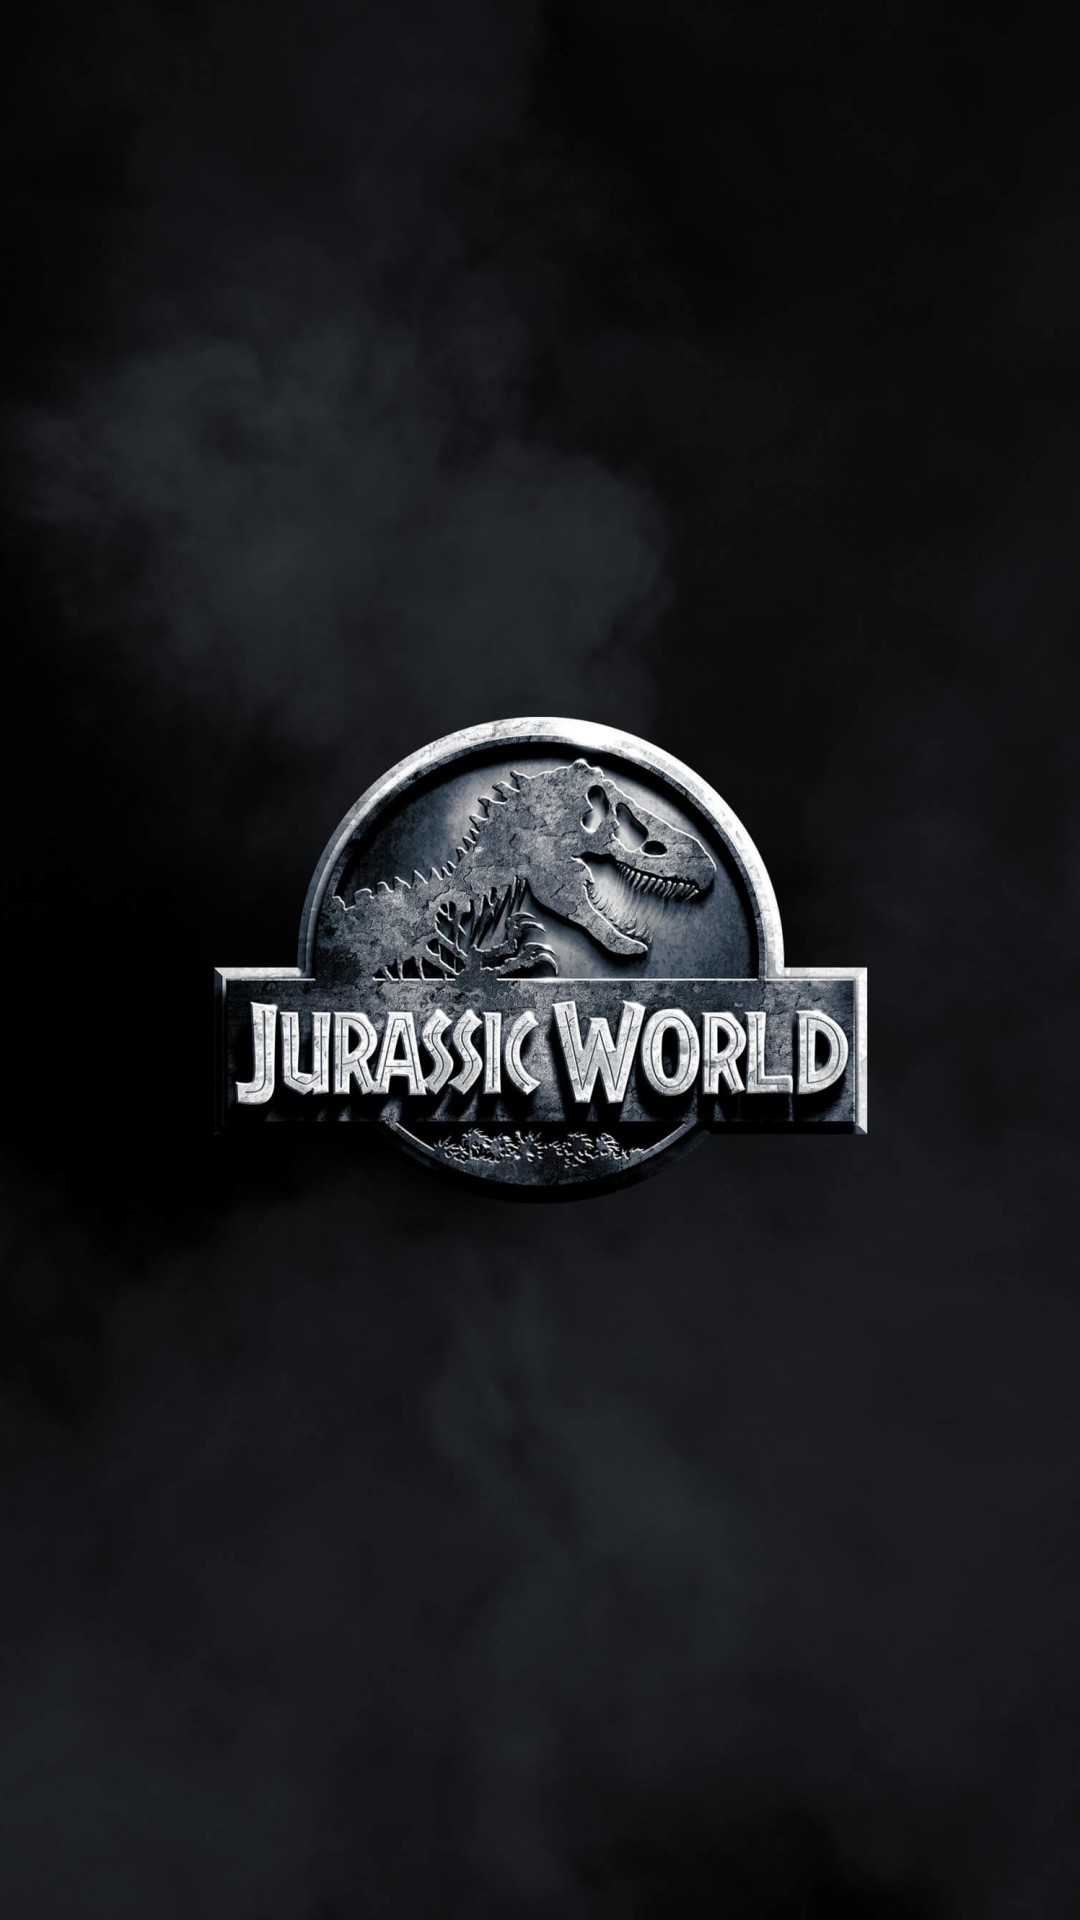 Jurassic World Wallpaper for SONY Xperia Z1